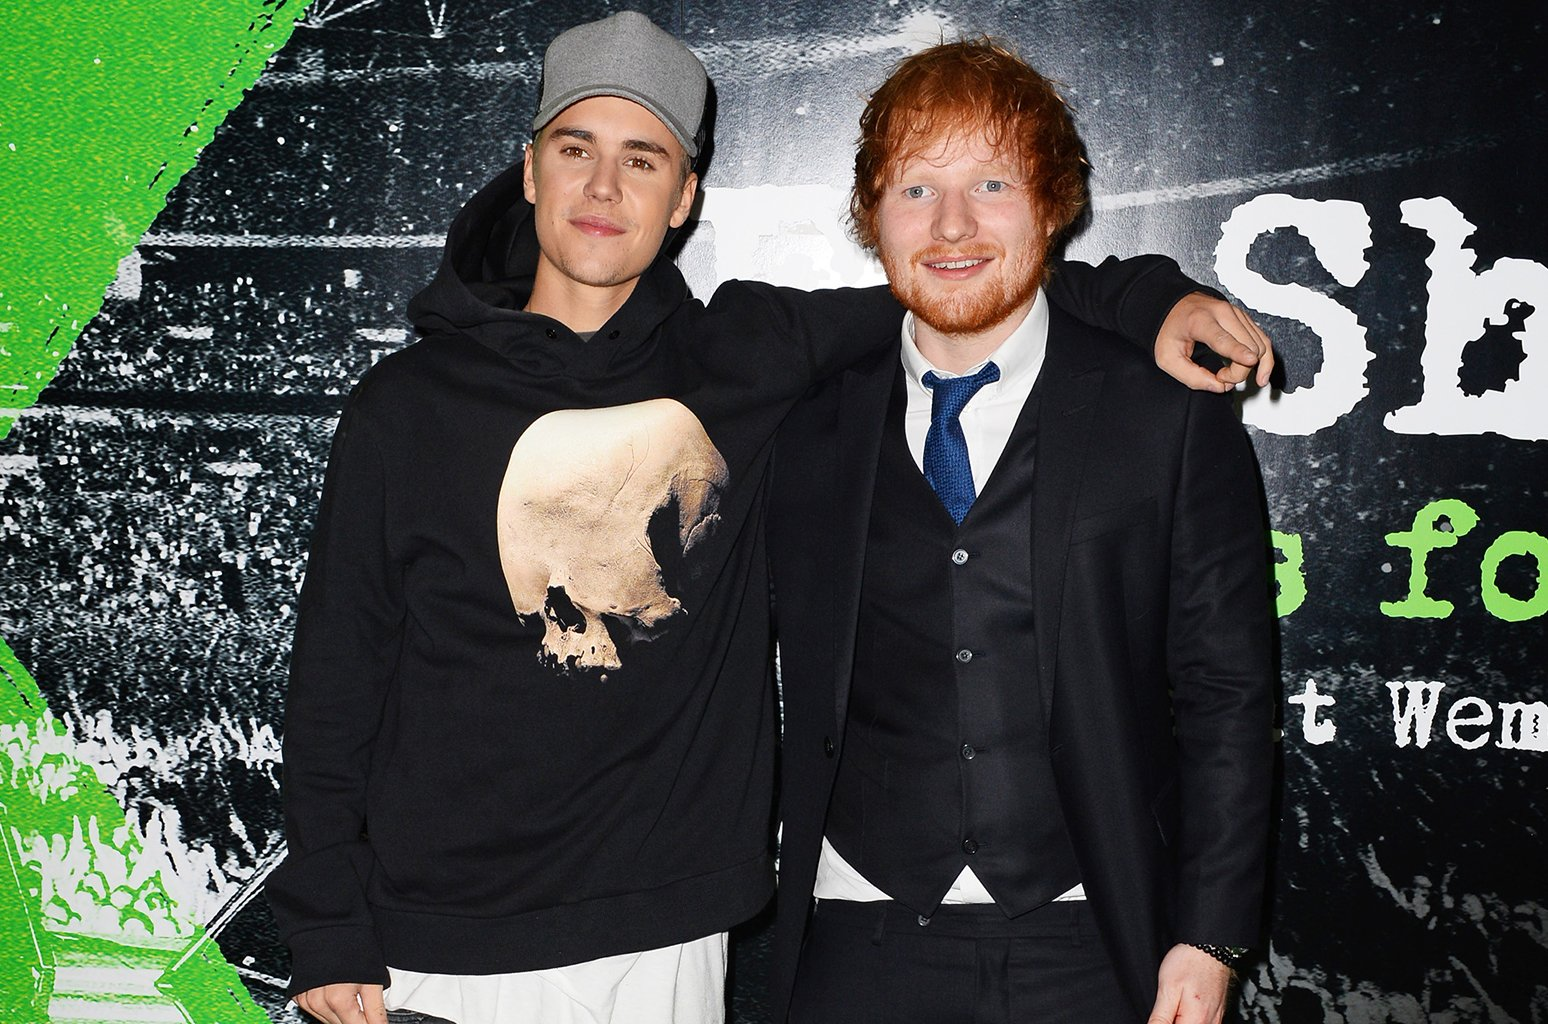 Ed Sheeran & Justin Bieber I Don't Care Lyrics